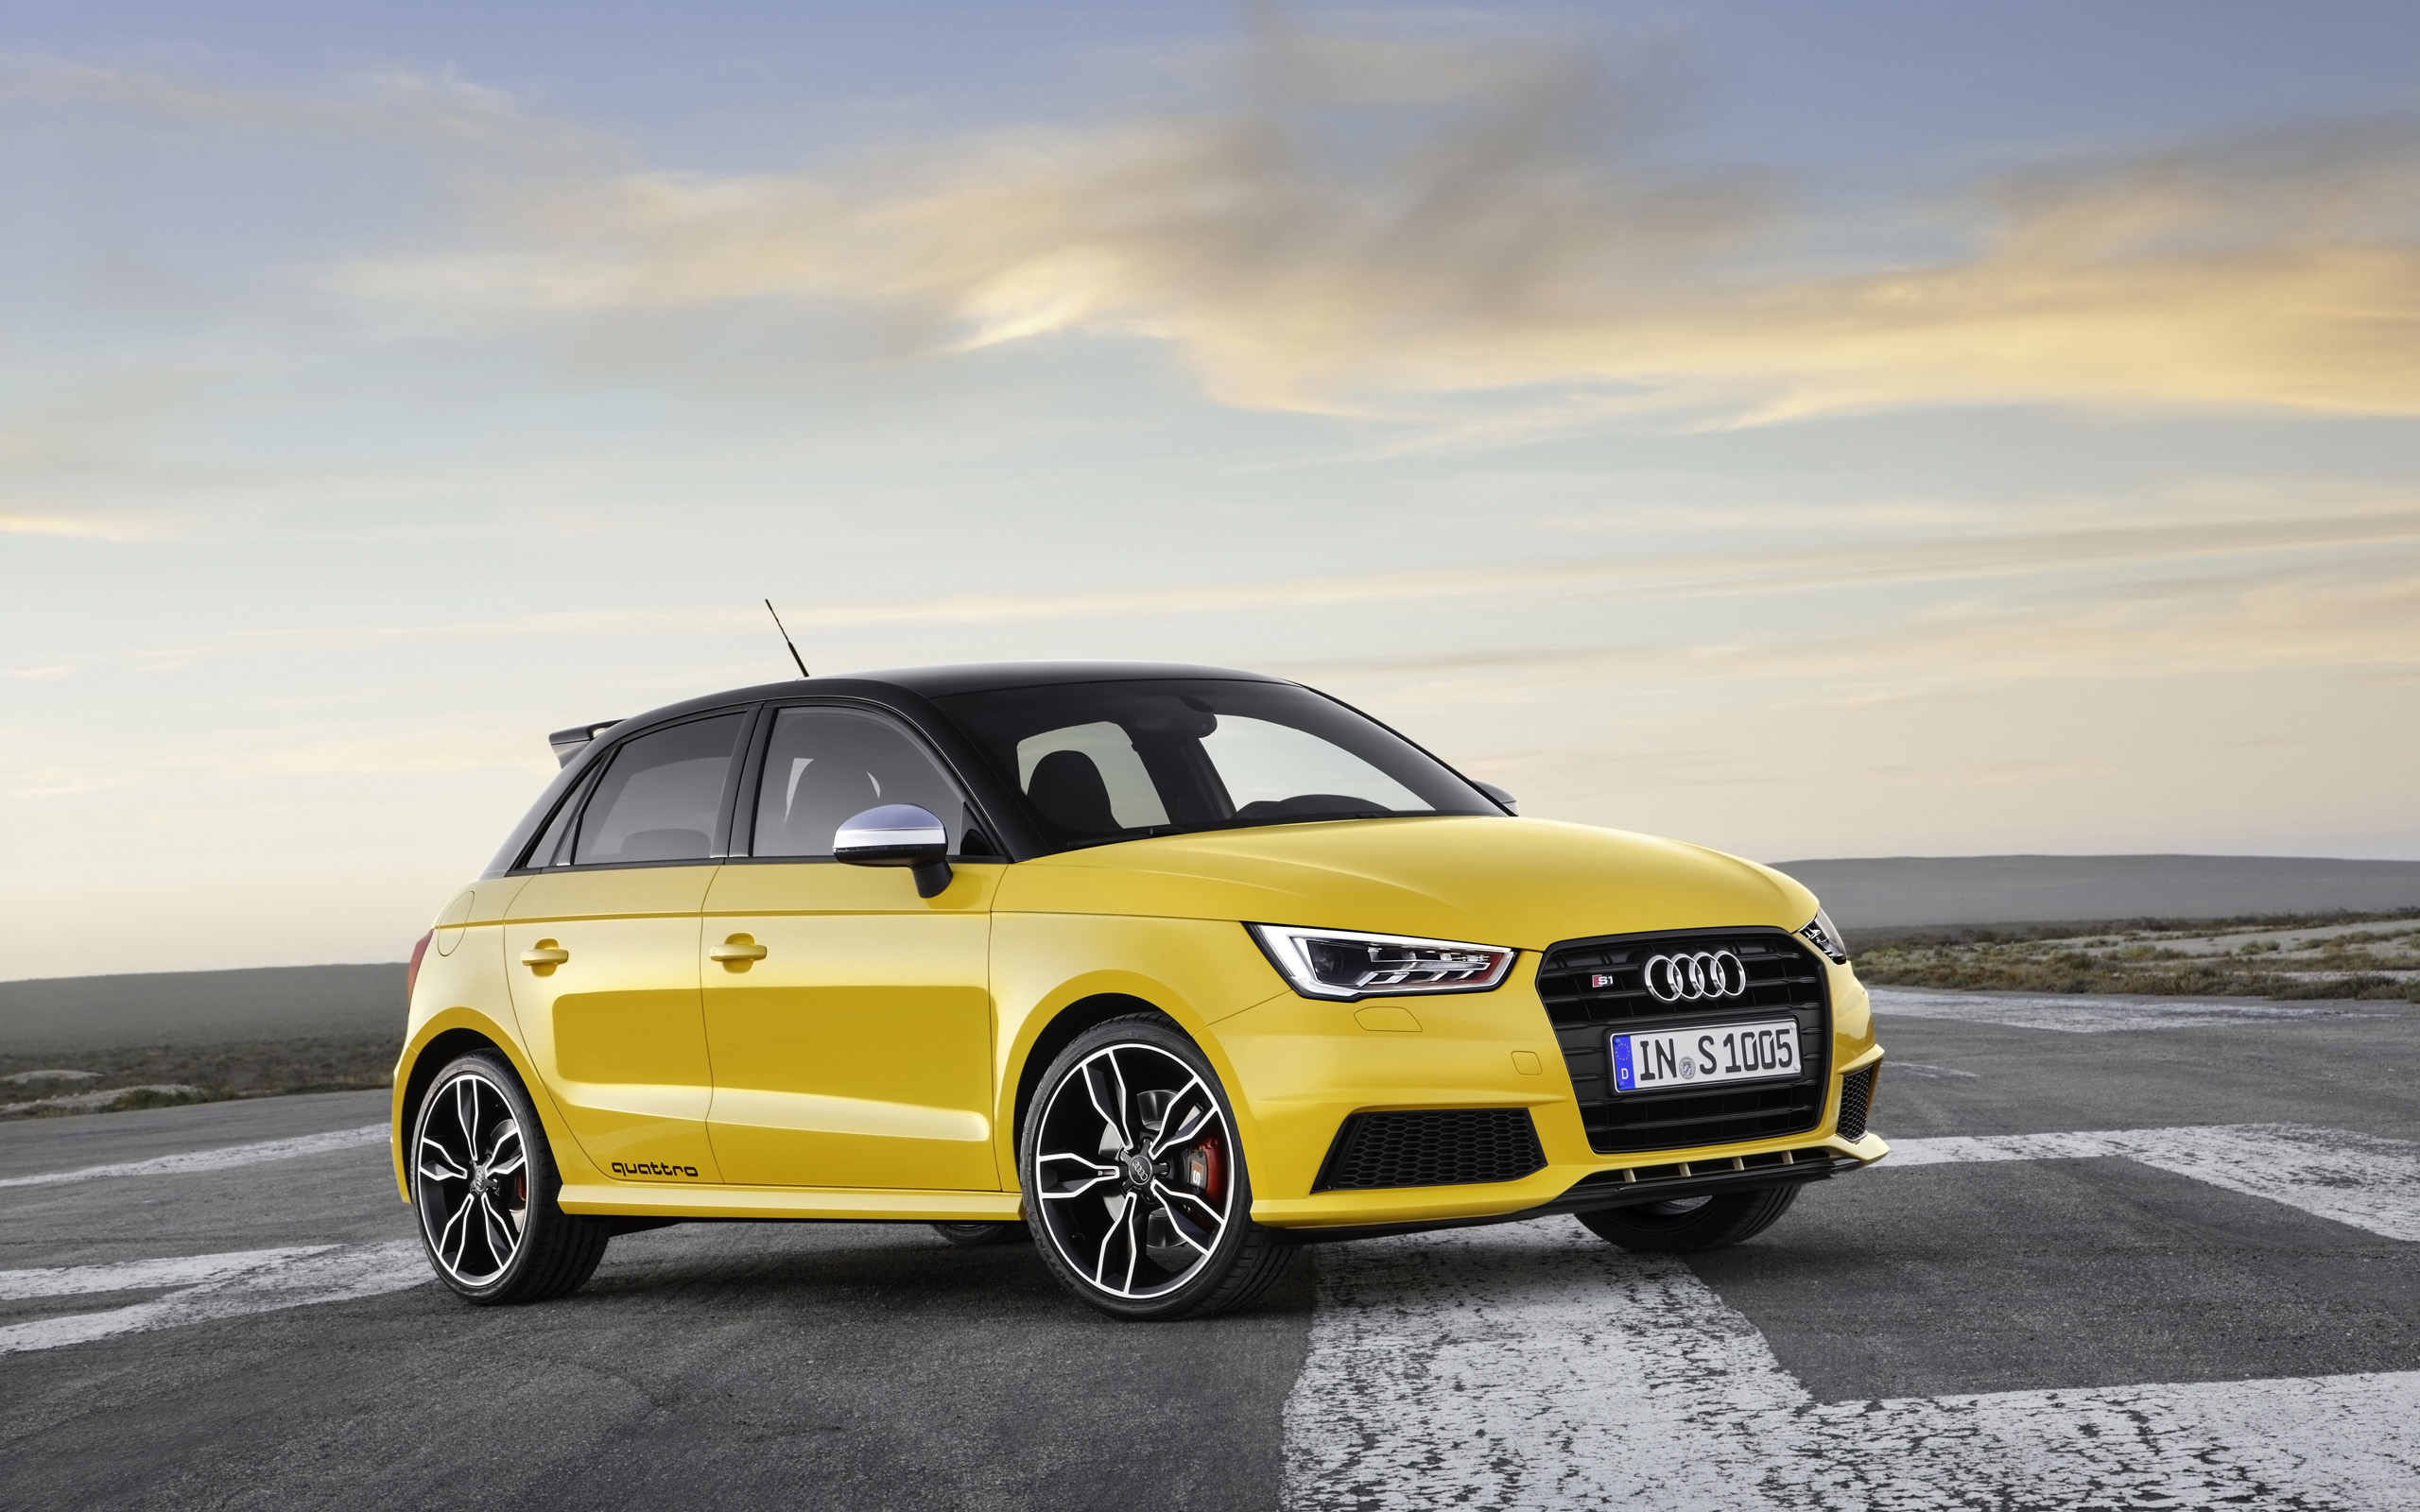 2014 Audi S1 Quattro Wallpaper Hd Car Wallpapers Id 4162